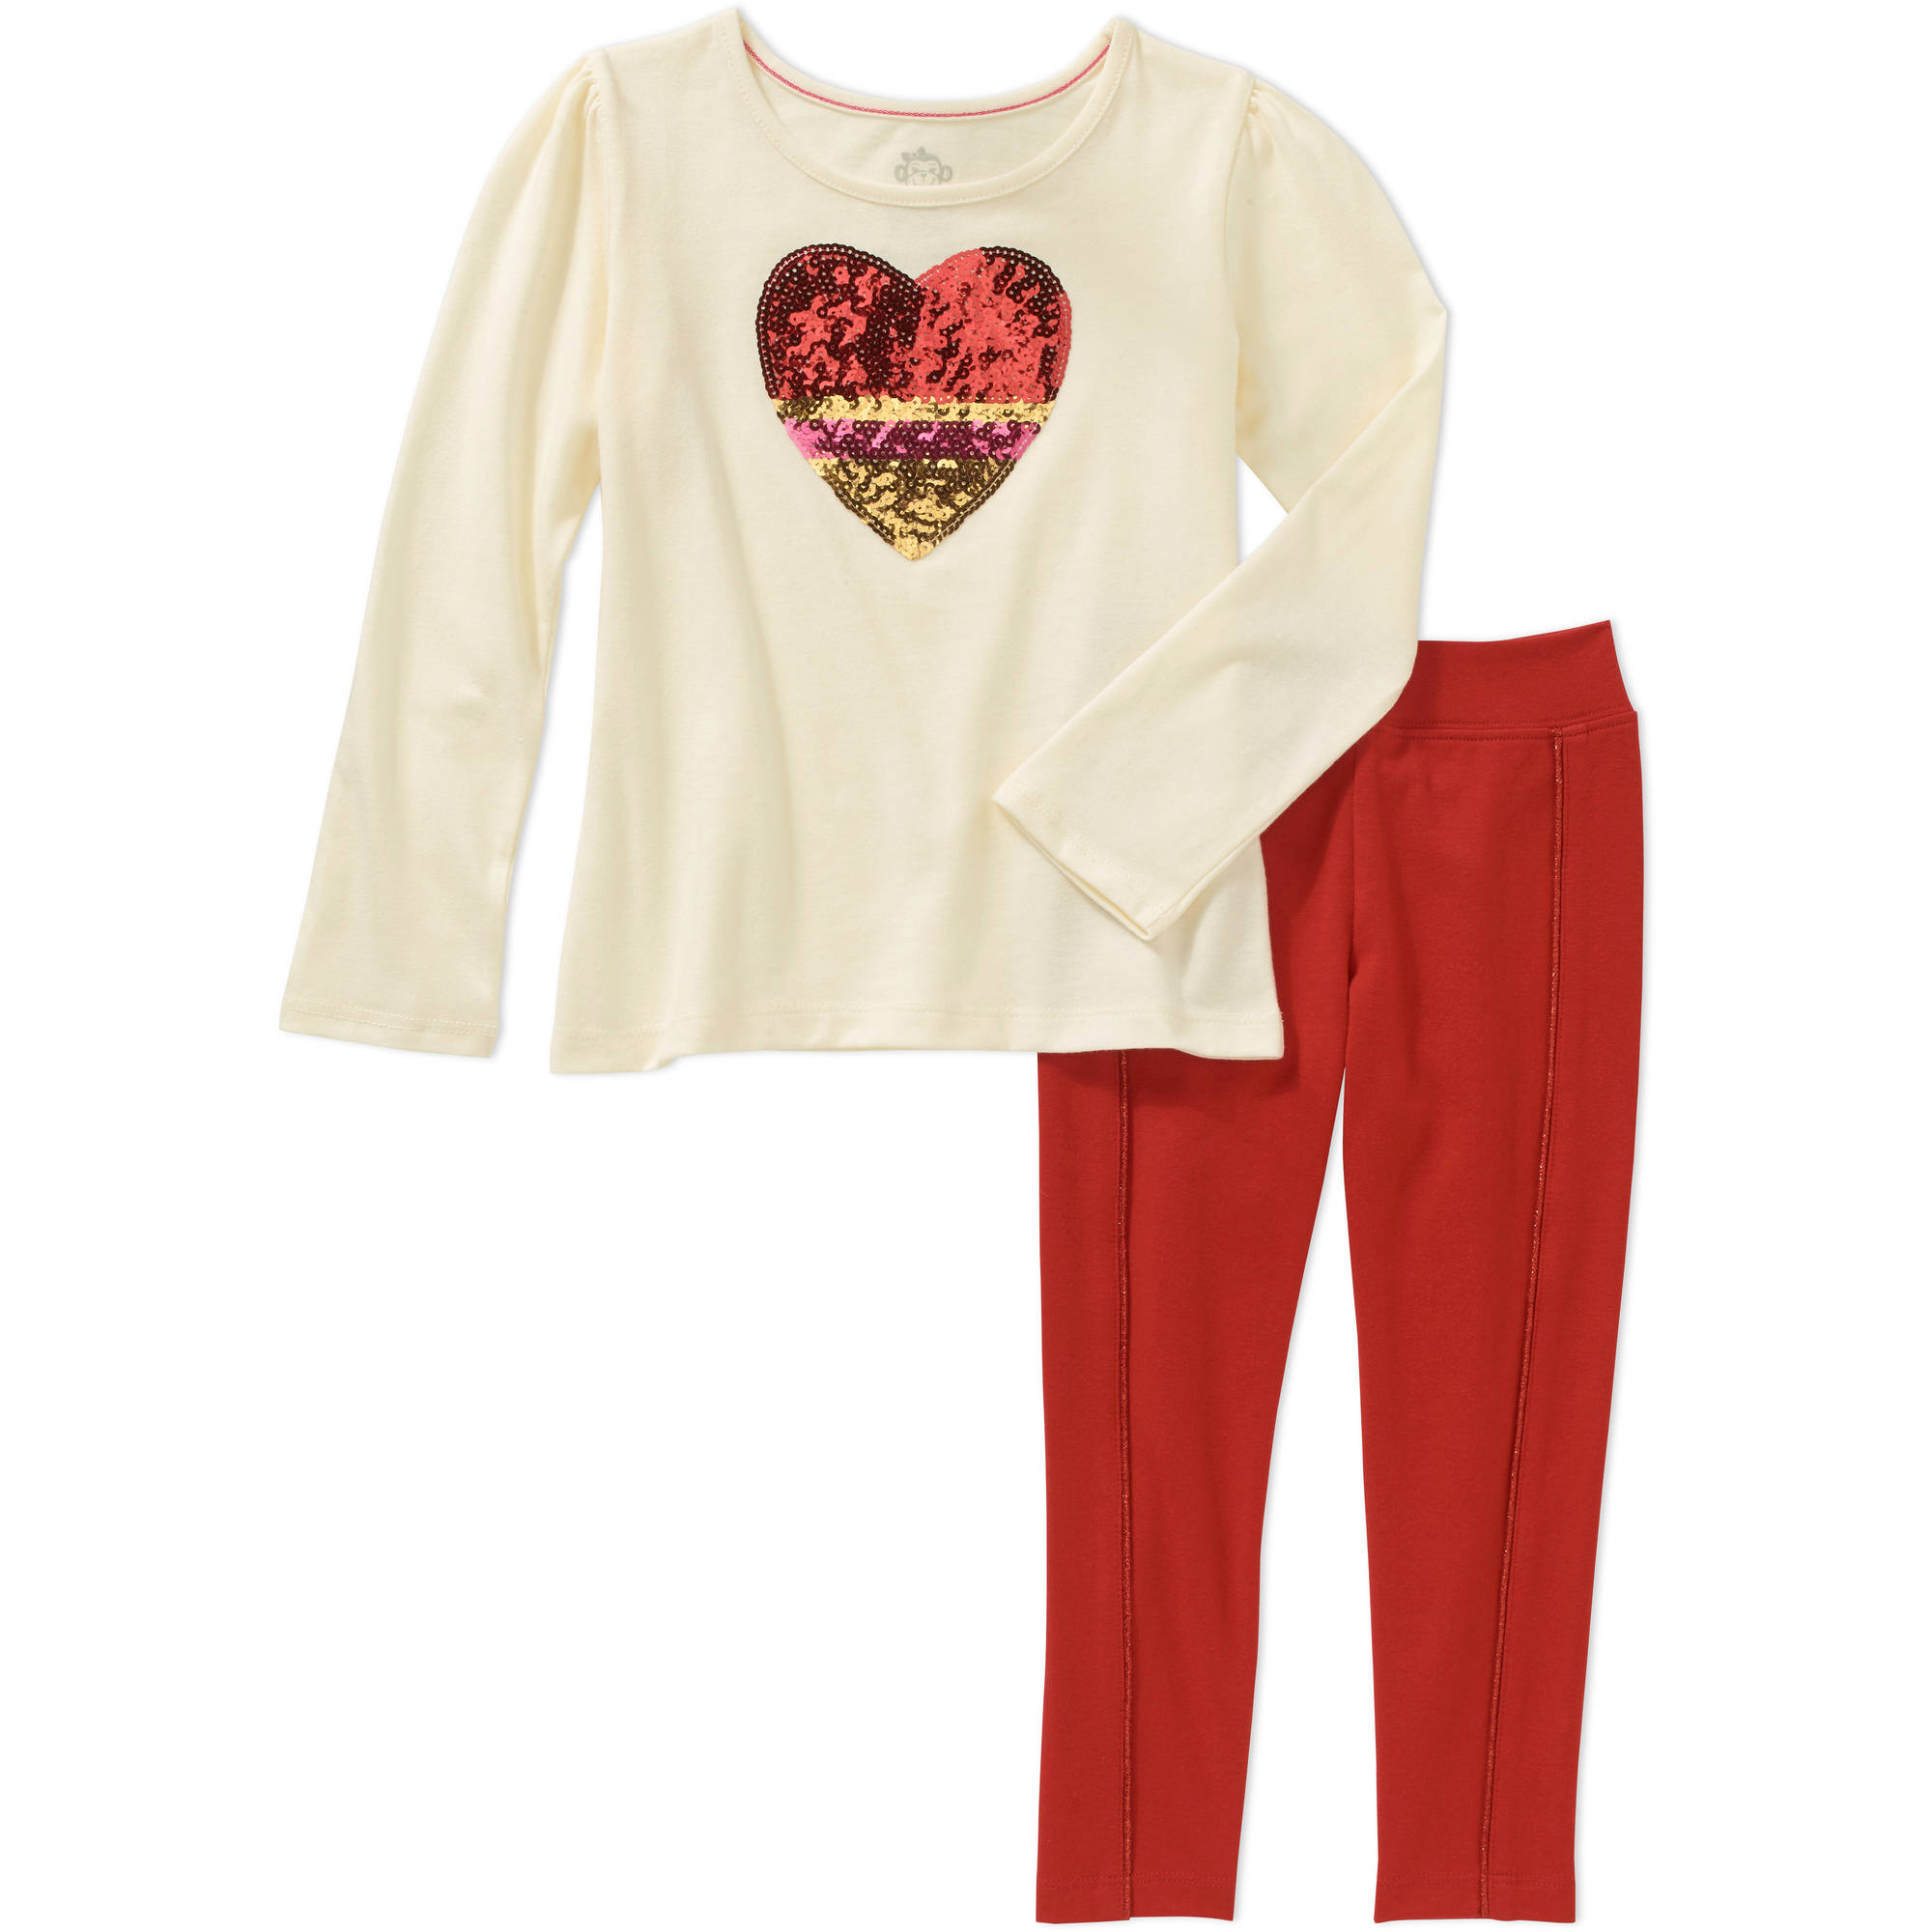 365 Kids from Garanimals Girls' Long Sleeve Heatseal Tee and Solid Leggings with Piping Outfit Set